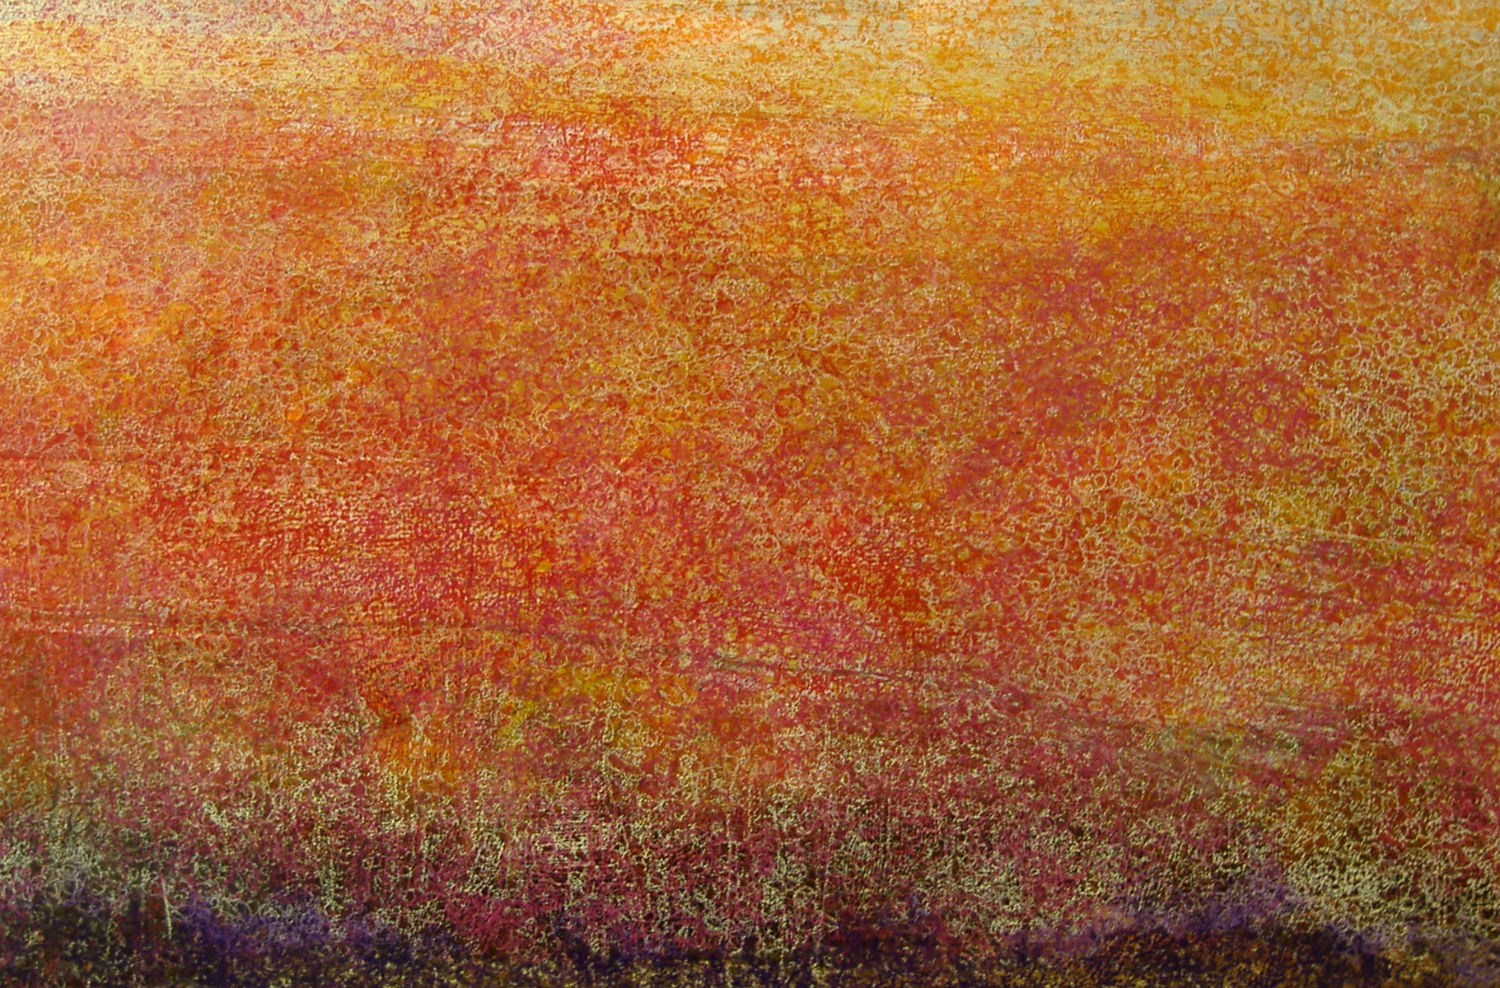 keith salmon blind painter art abstract landscape orange